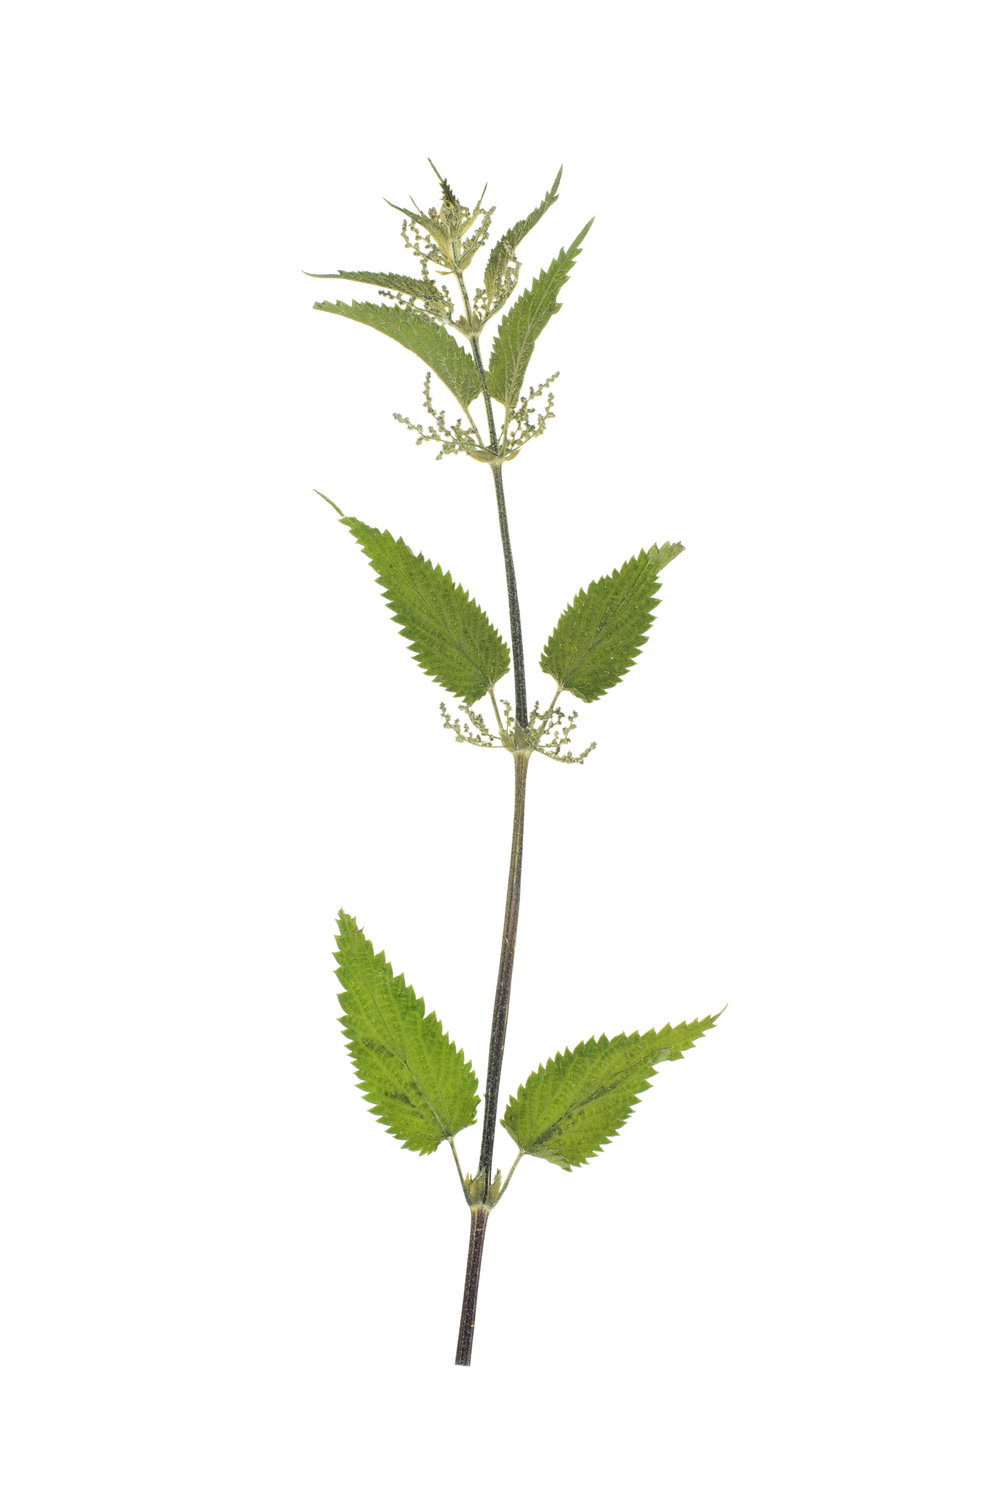 Urtica dioica / Stinging Nettle